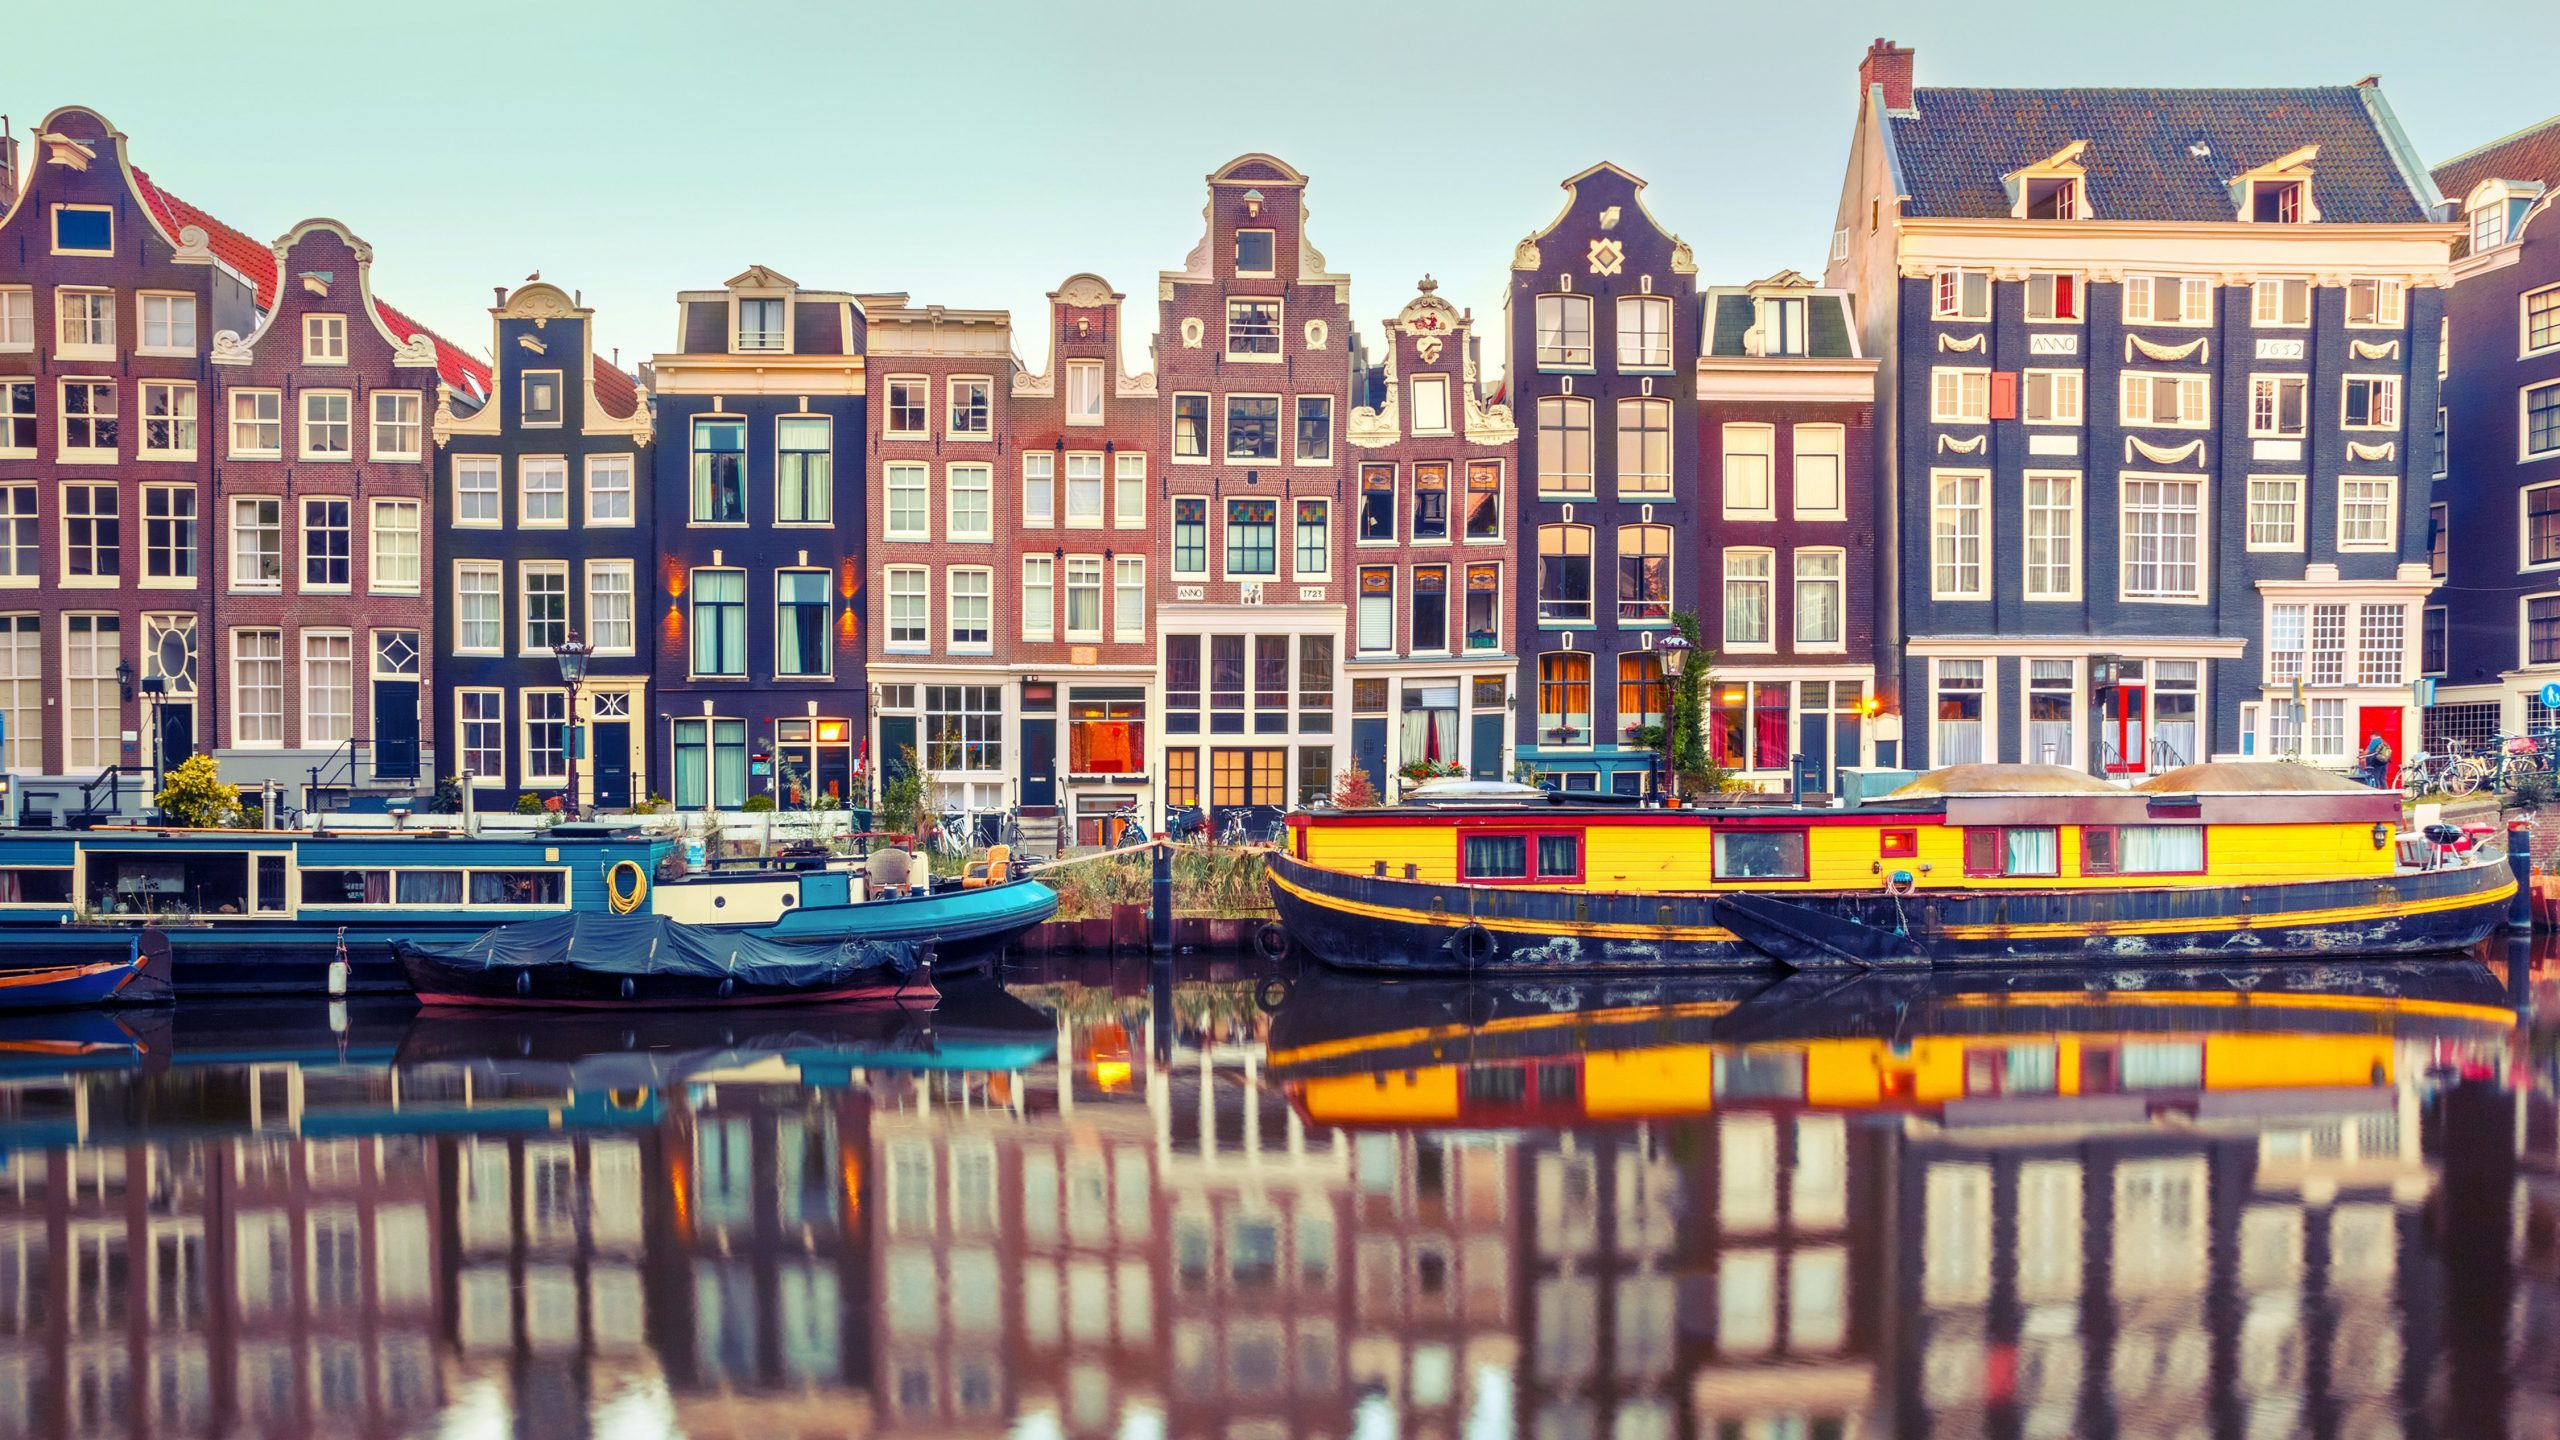 ISE Europe: On the Road in Amsterdam